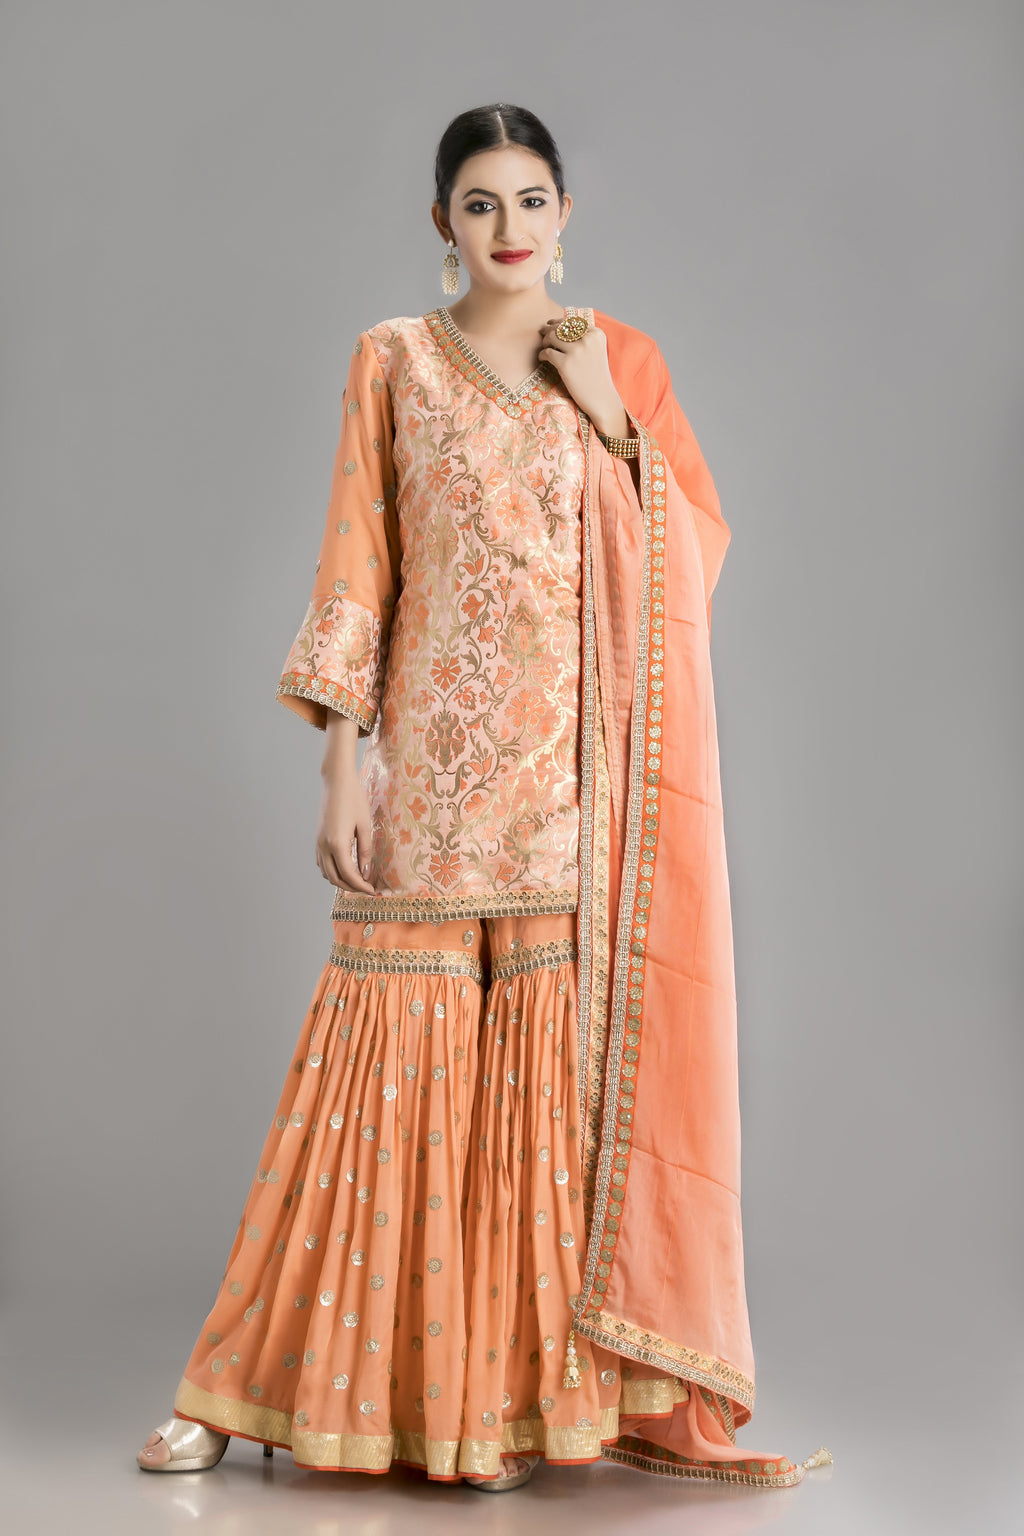 Nazaakat-The Peach Garara and banarasi kurti ensemble for a completely ethnic look